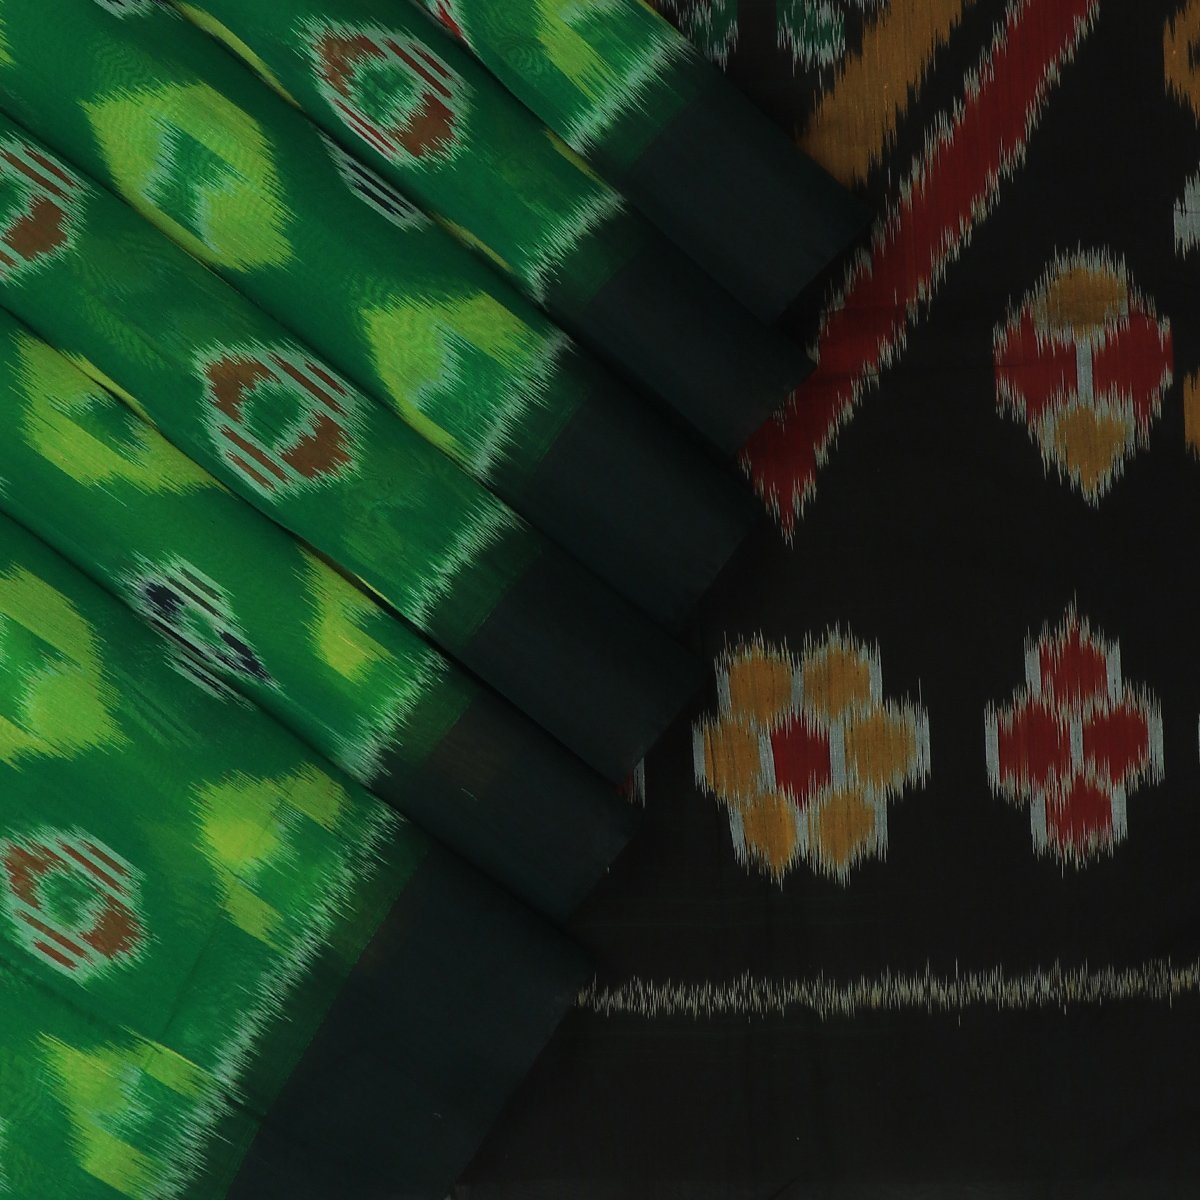 Kora silk Cotton saree Green and Black with Ikkat prints and Simple Border